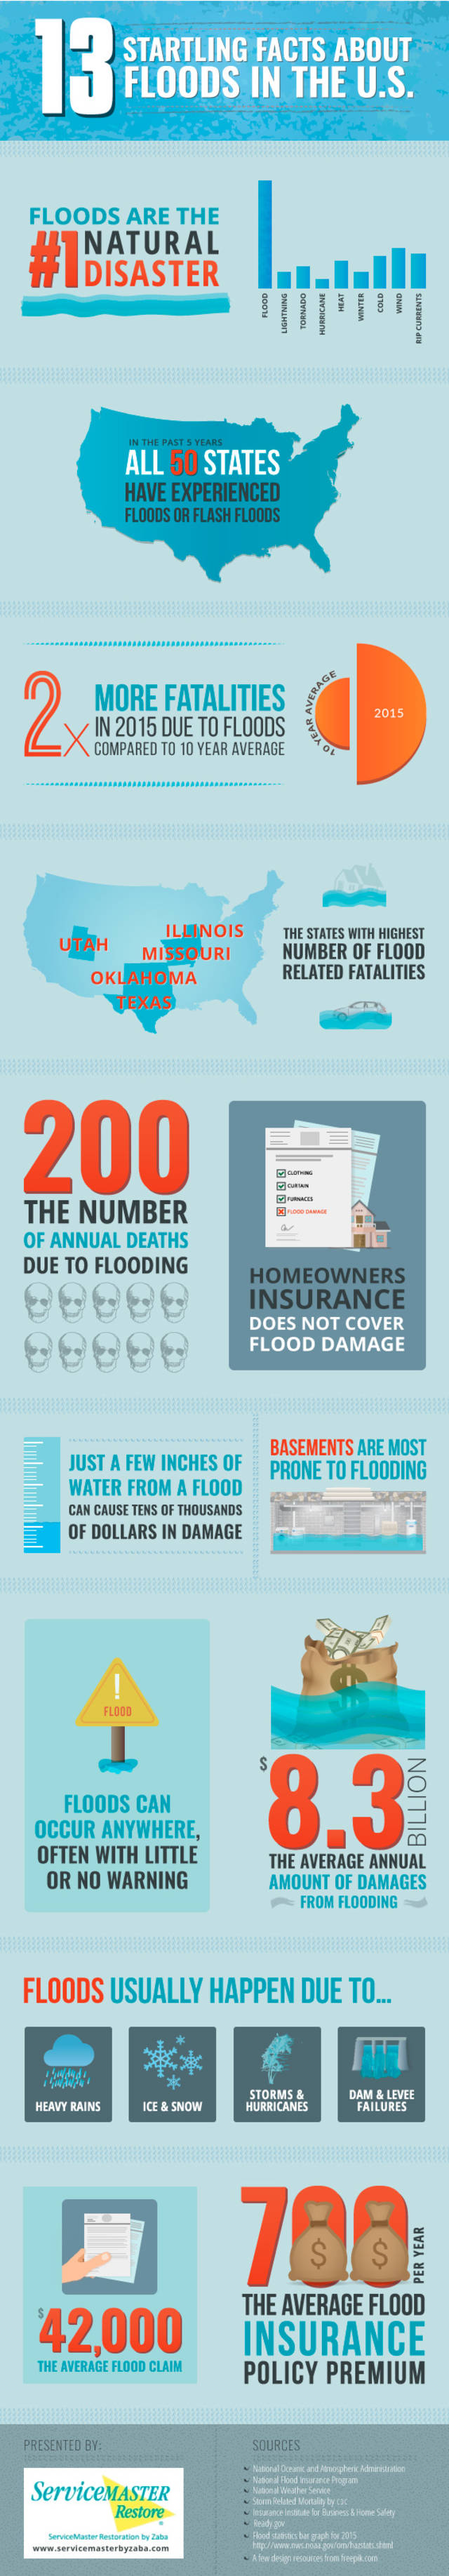 Flood facts infographic